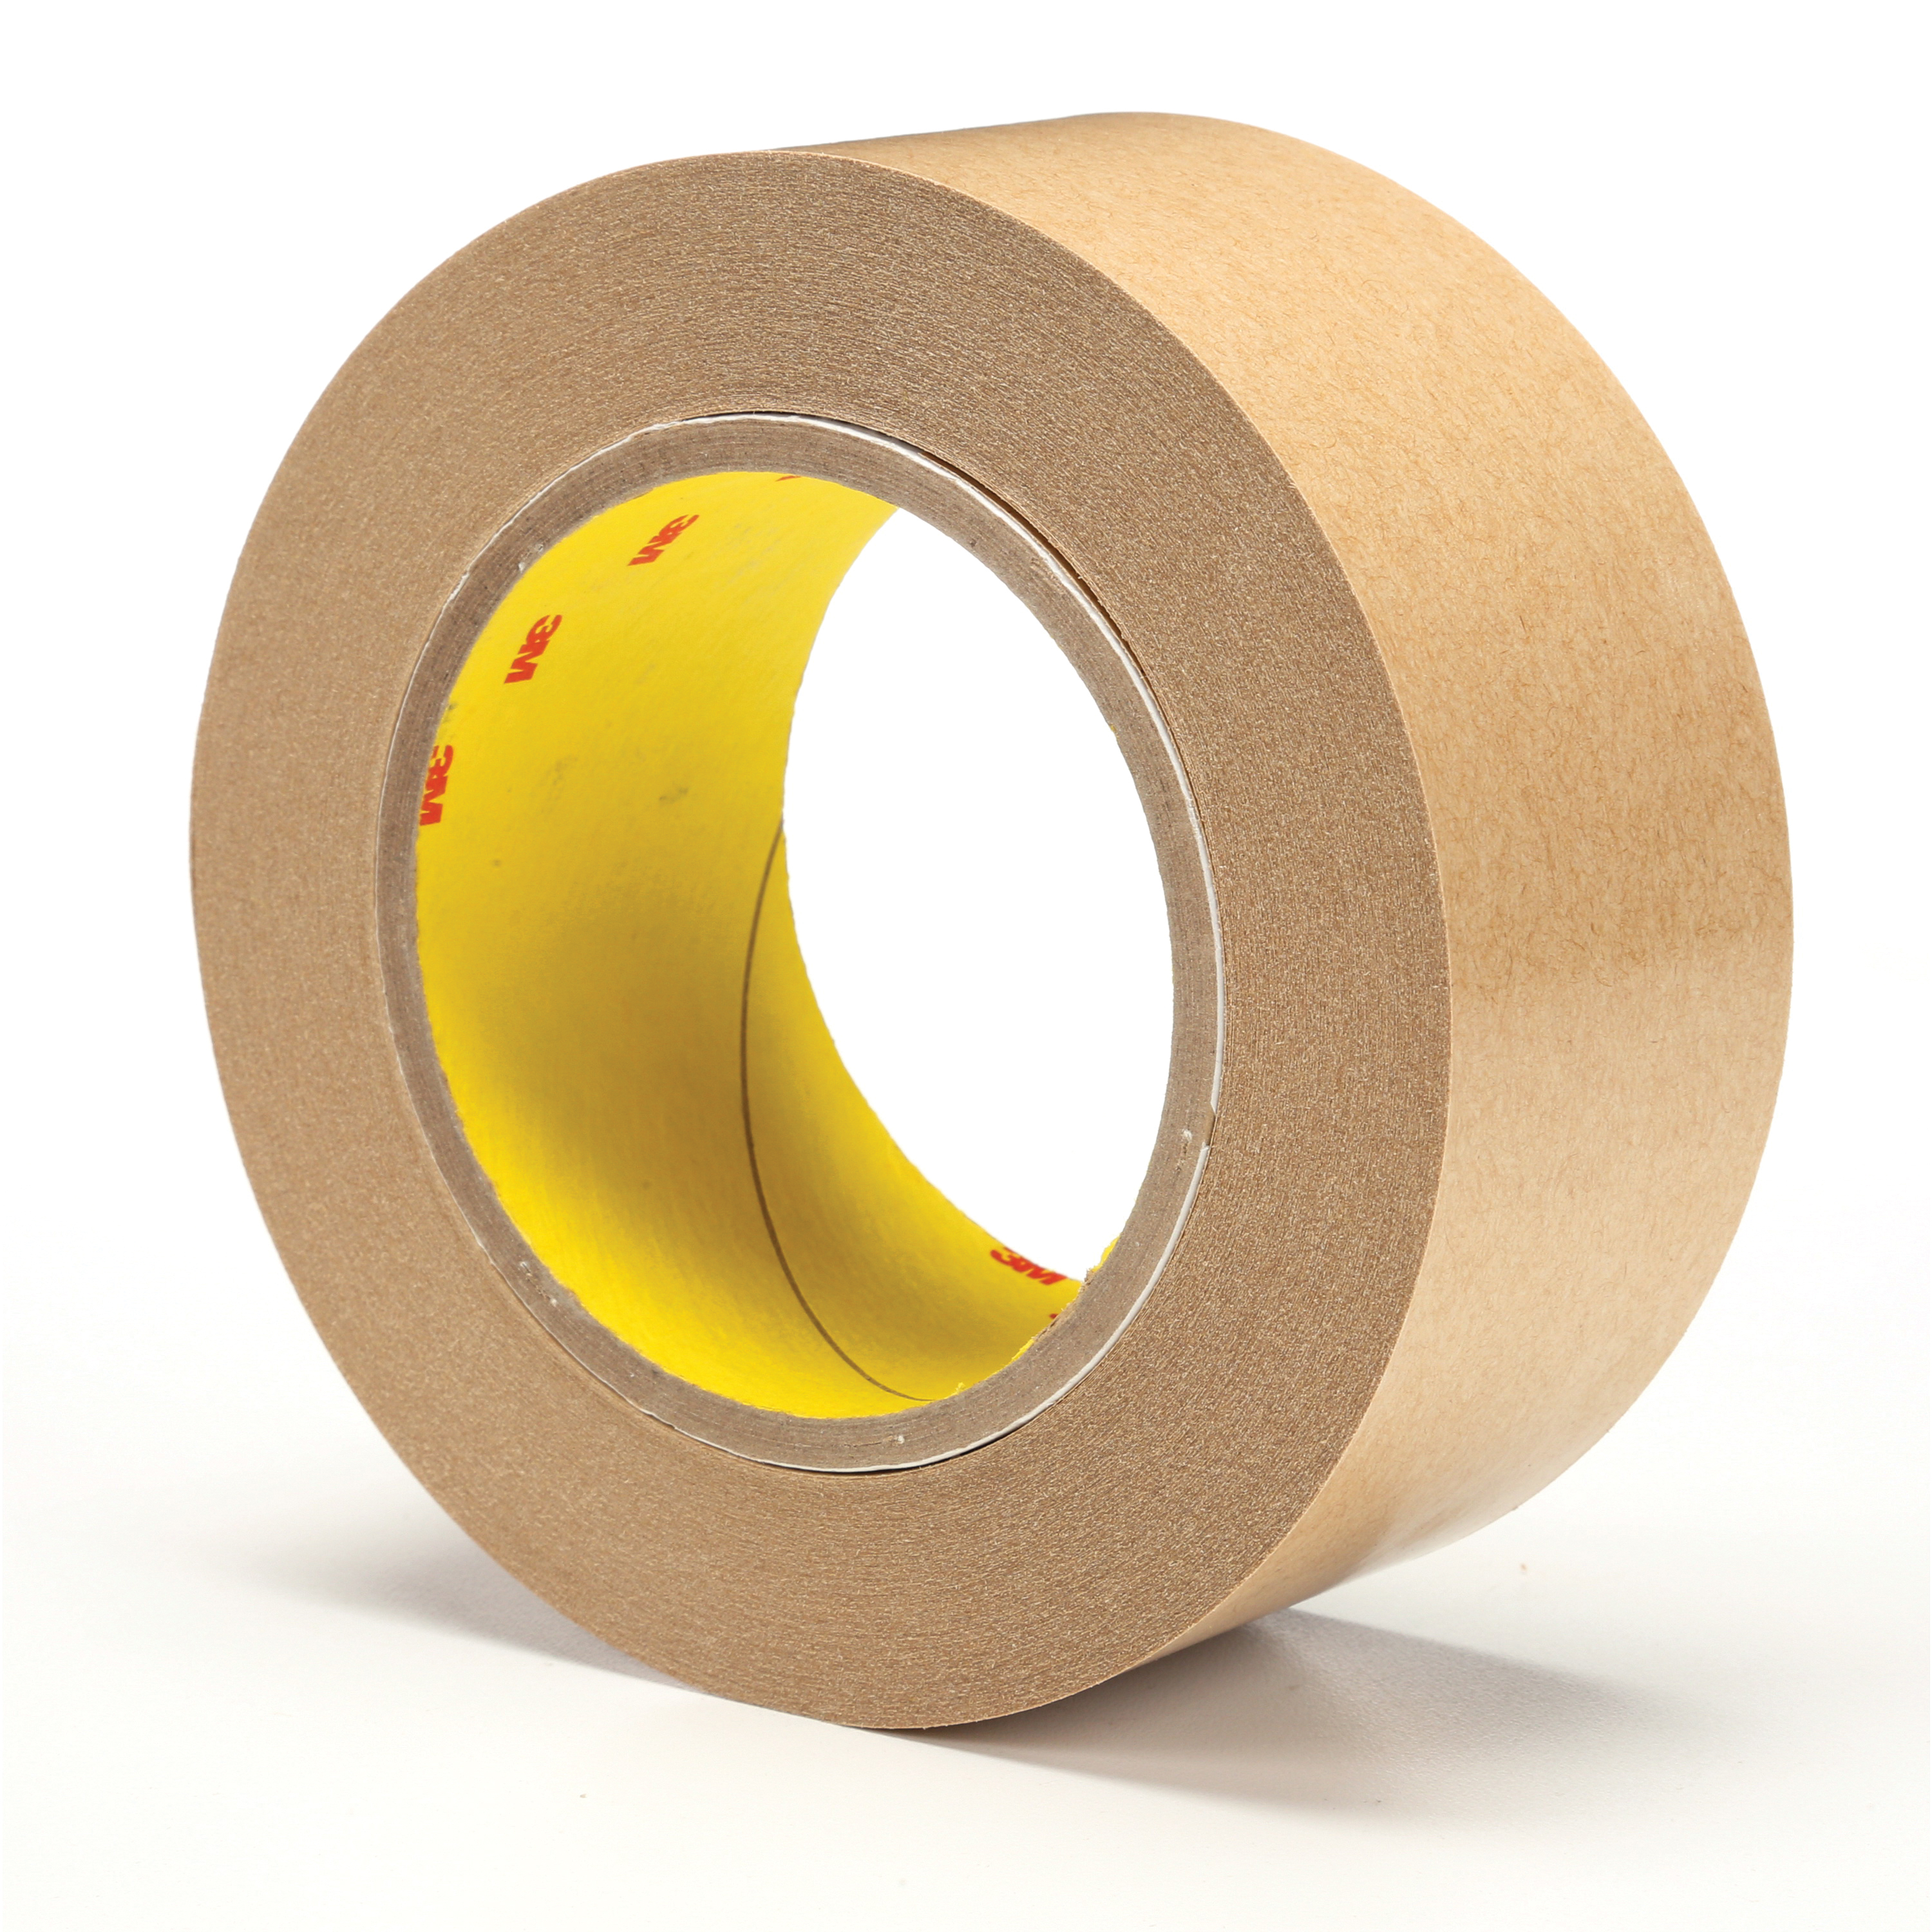 3M™ 021200-04299 465 Fibered General Purpose Adhesive Transfer Tape, 2 in W x 60 yd Roll L, 2 mil THK, Clear